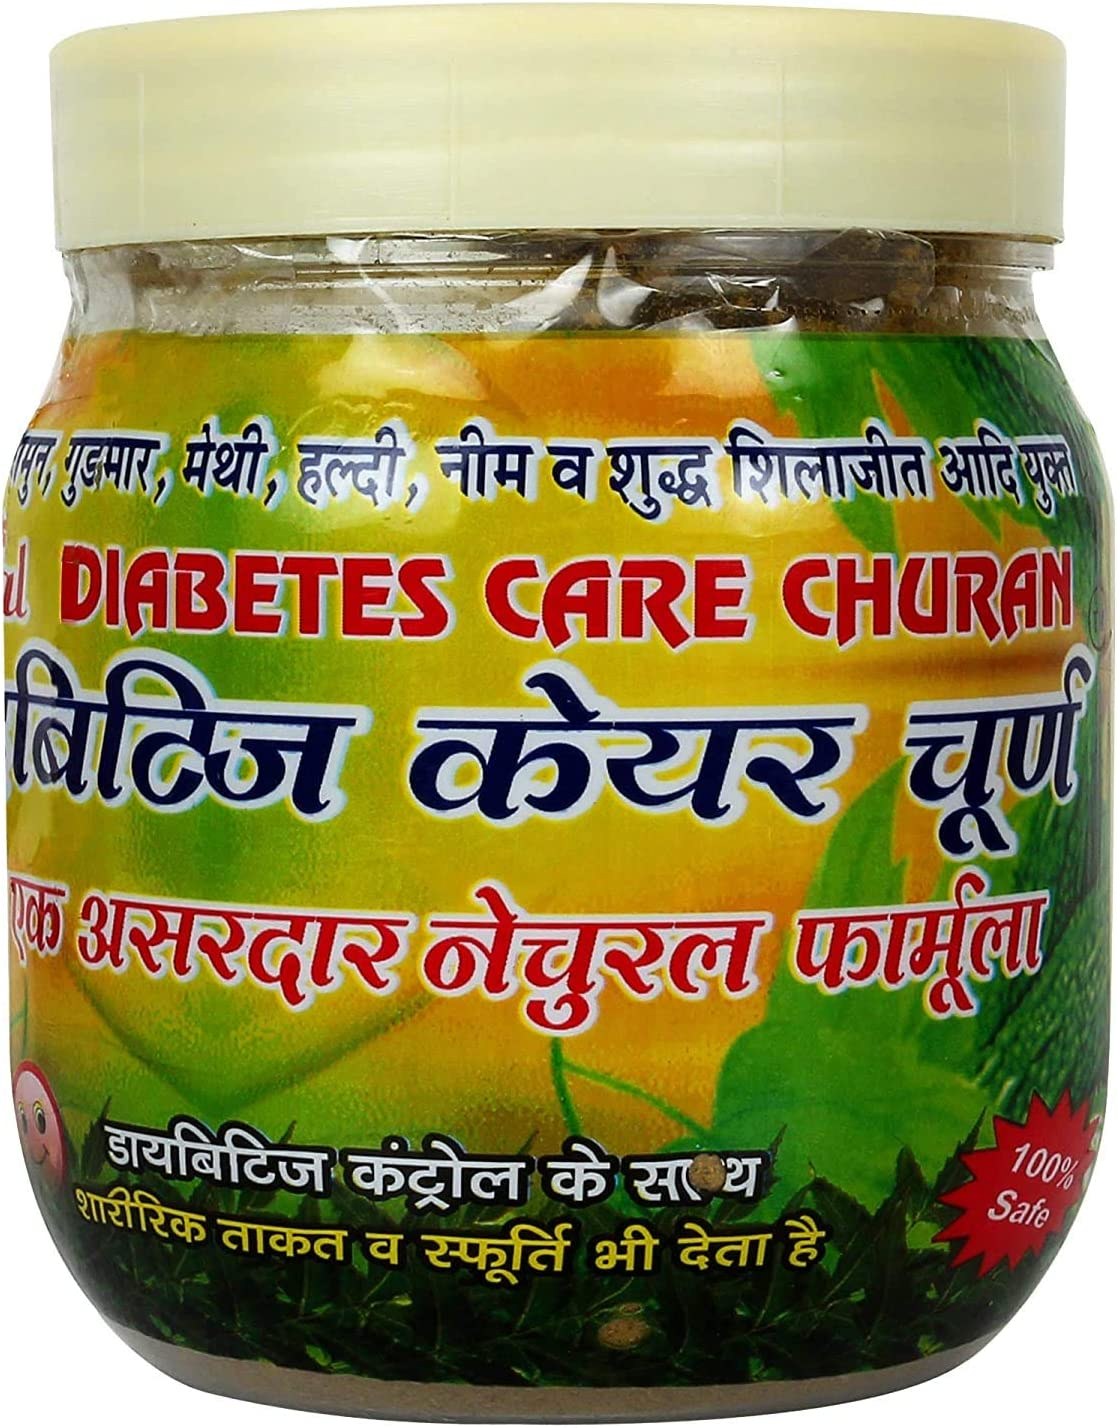 RRG BADAL Diabetes 250g Popular products OFFicial CHURAN Care